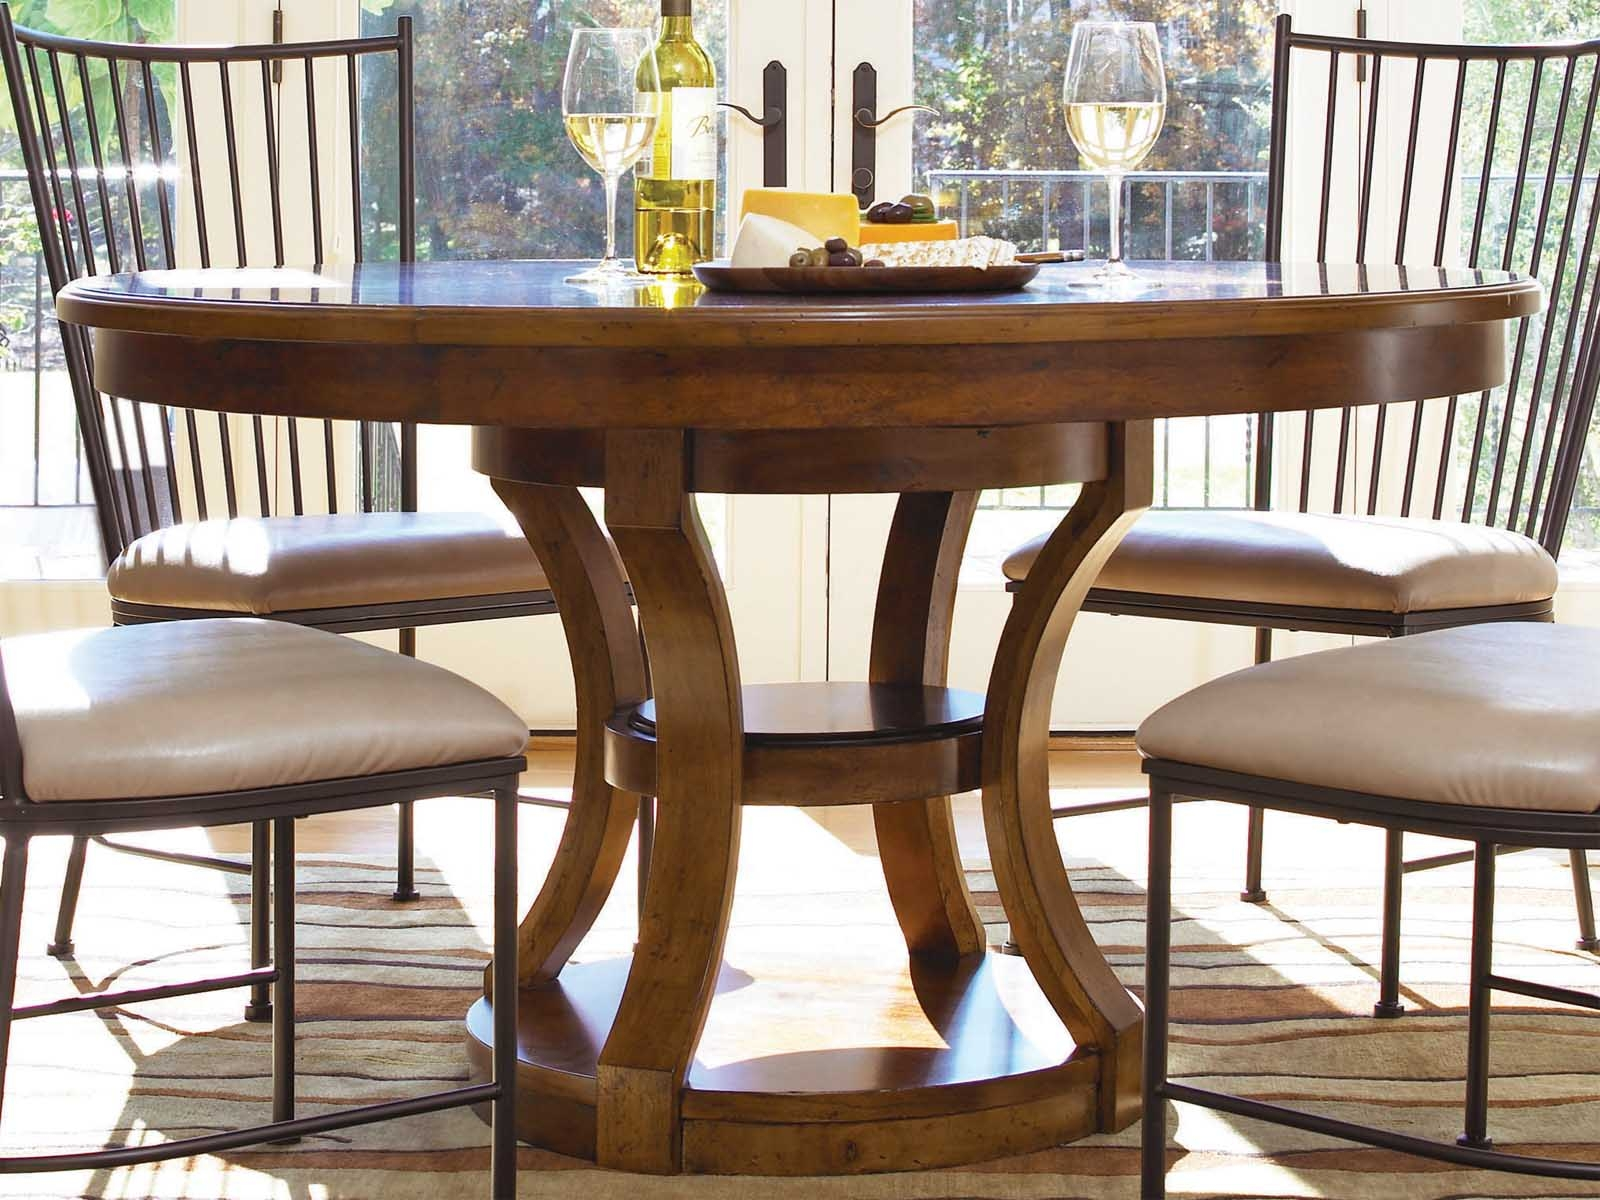 48 Inch Round Dining Table is also a kind of 48 Inch Round Pedestal Dining Table With Leaf  - High Dining Table